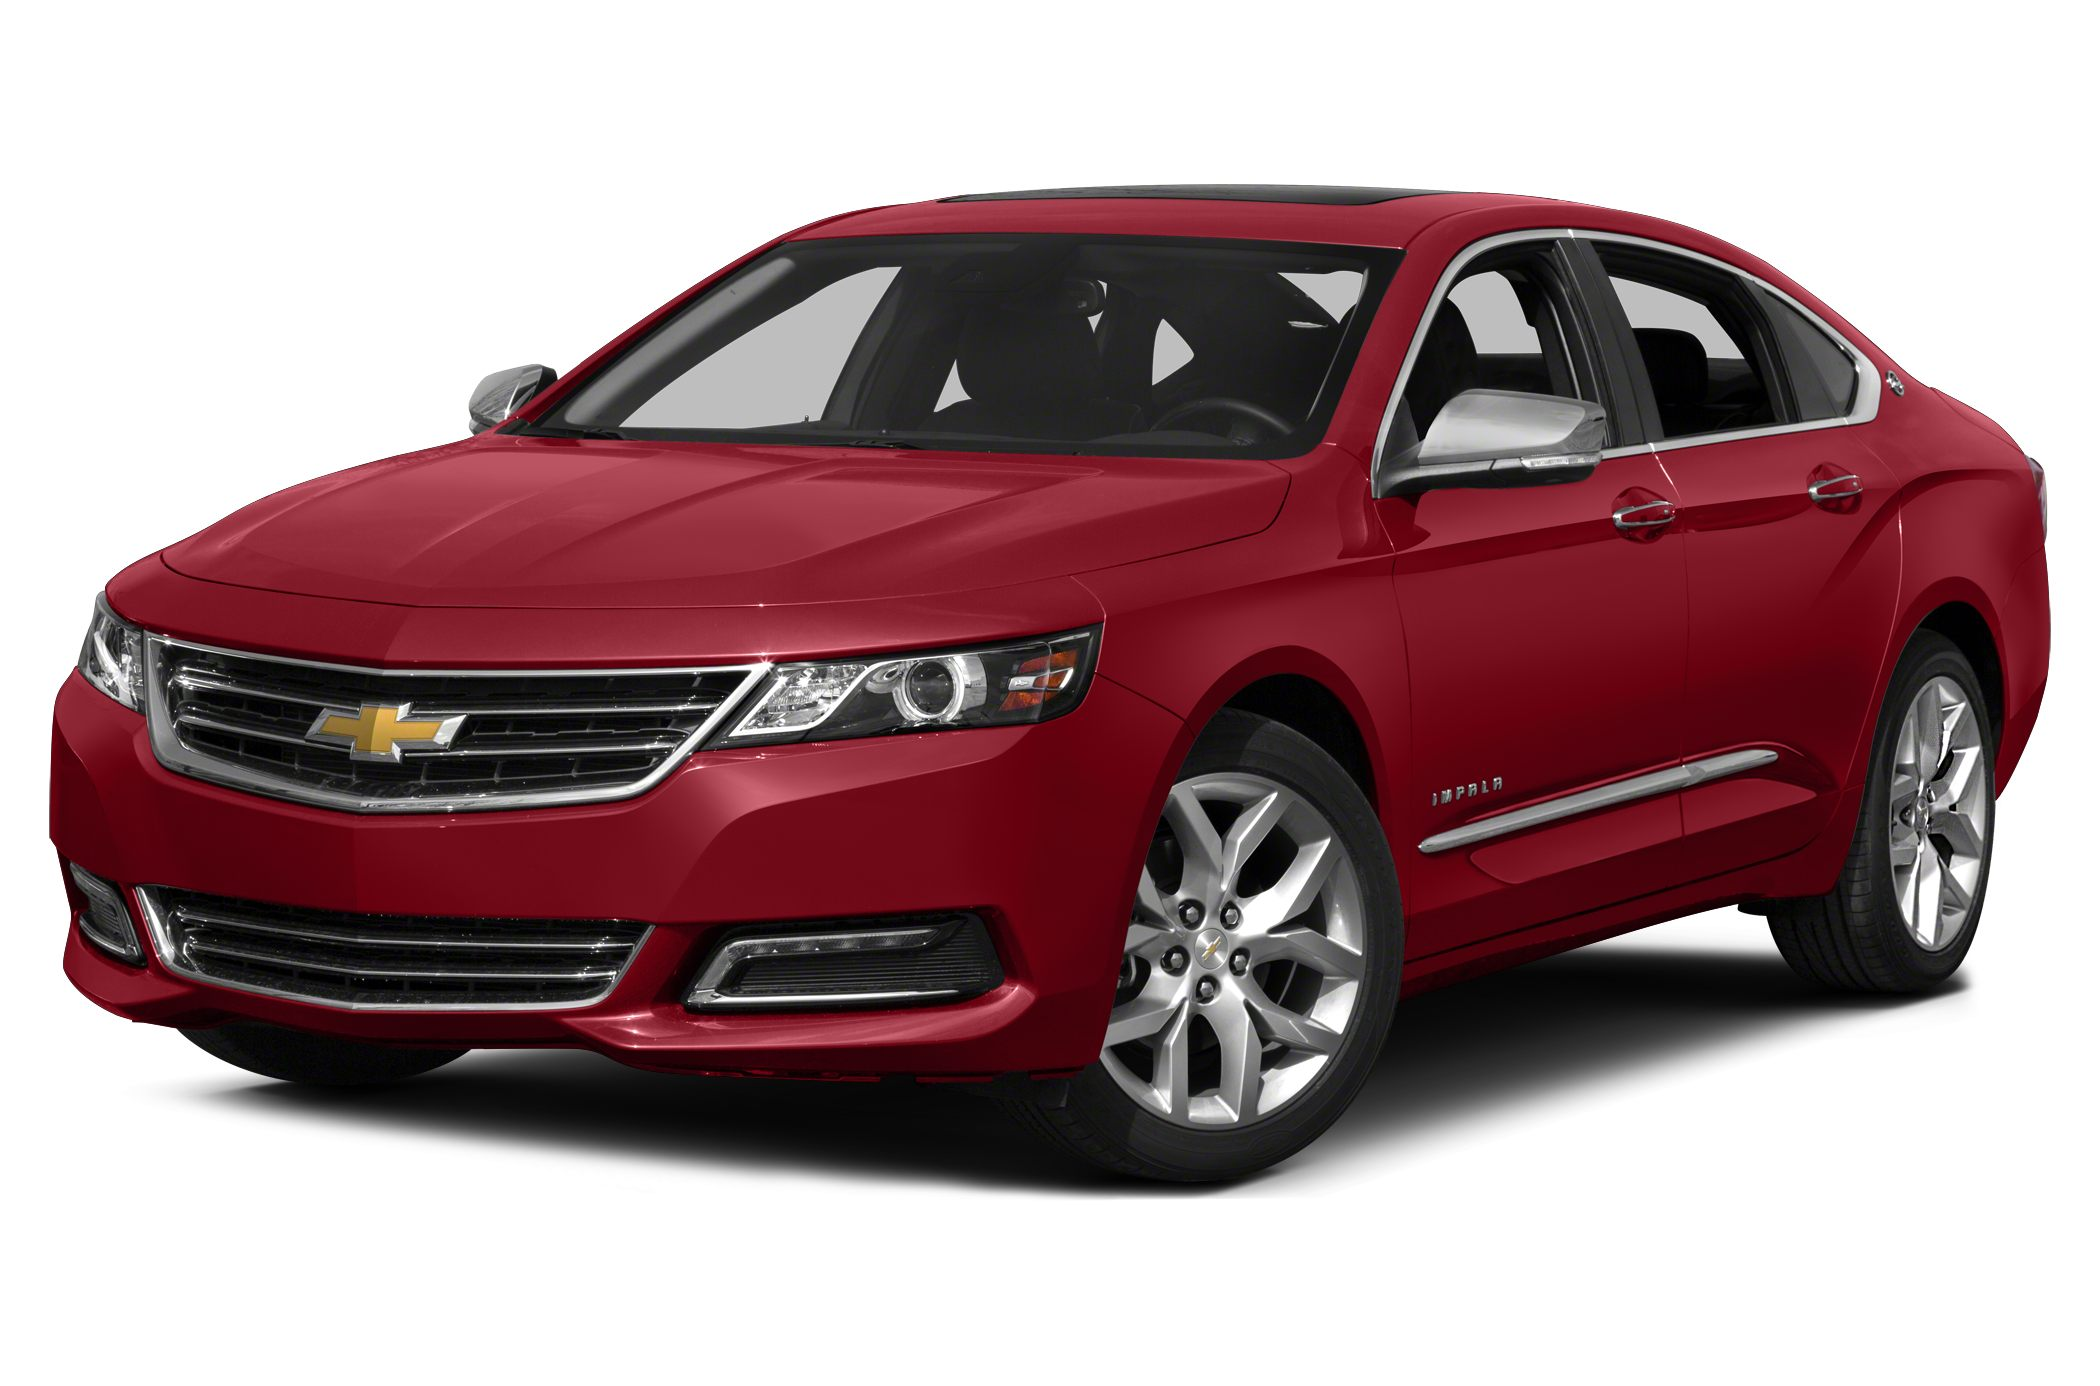 2014 Chevrolet Impala 1LT Sedan for sale in Danville for $22,700 with 23,601 miles.